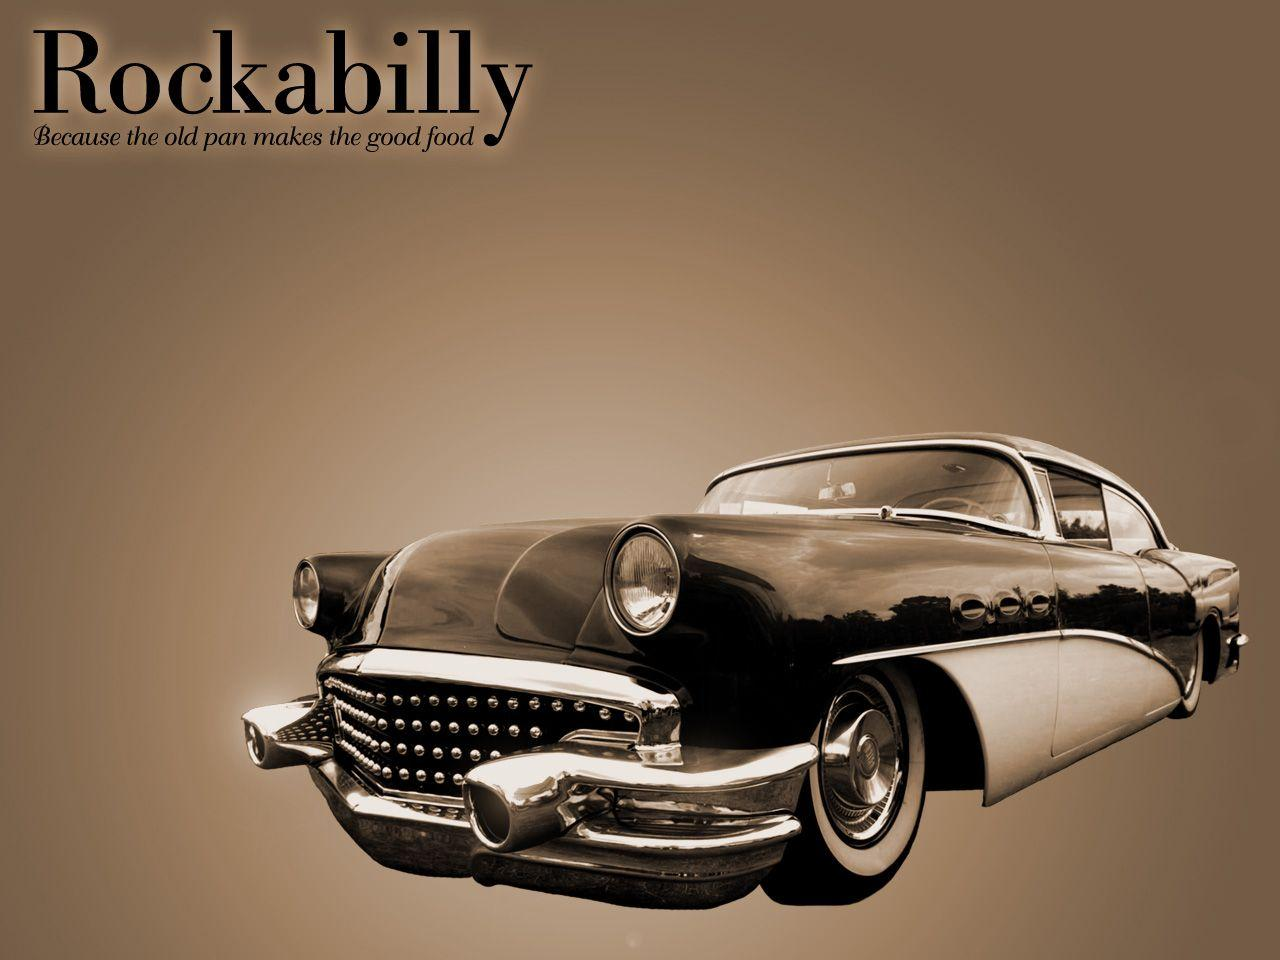 Rockabilly Wallpapers - Wallpaper Cave